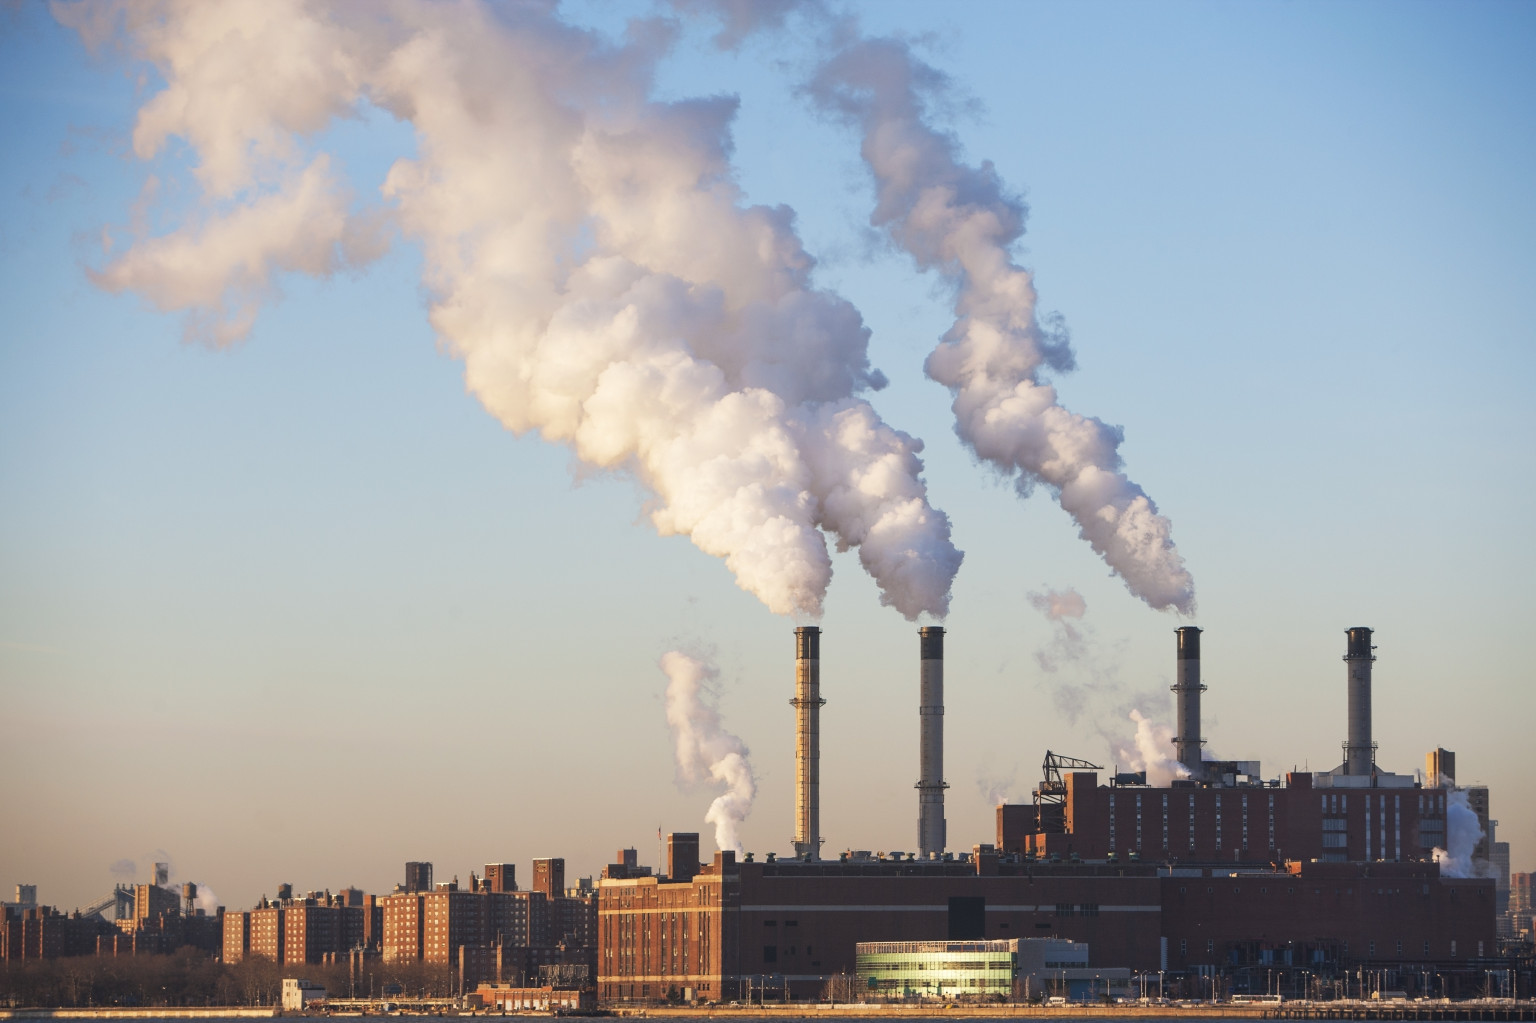 a study on environmental pollution Yet, pollution is the largest environmental cause of disease and death in the world today, responsible for an estimated 9 million premature deaths.